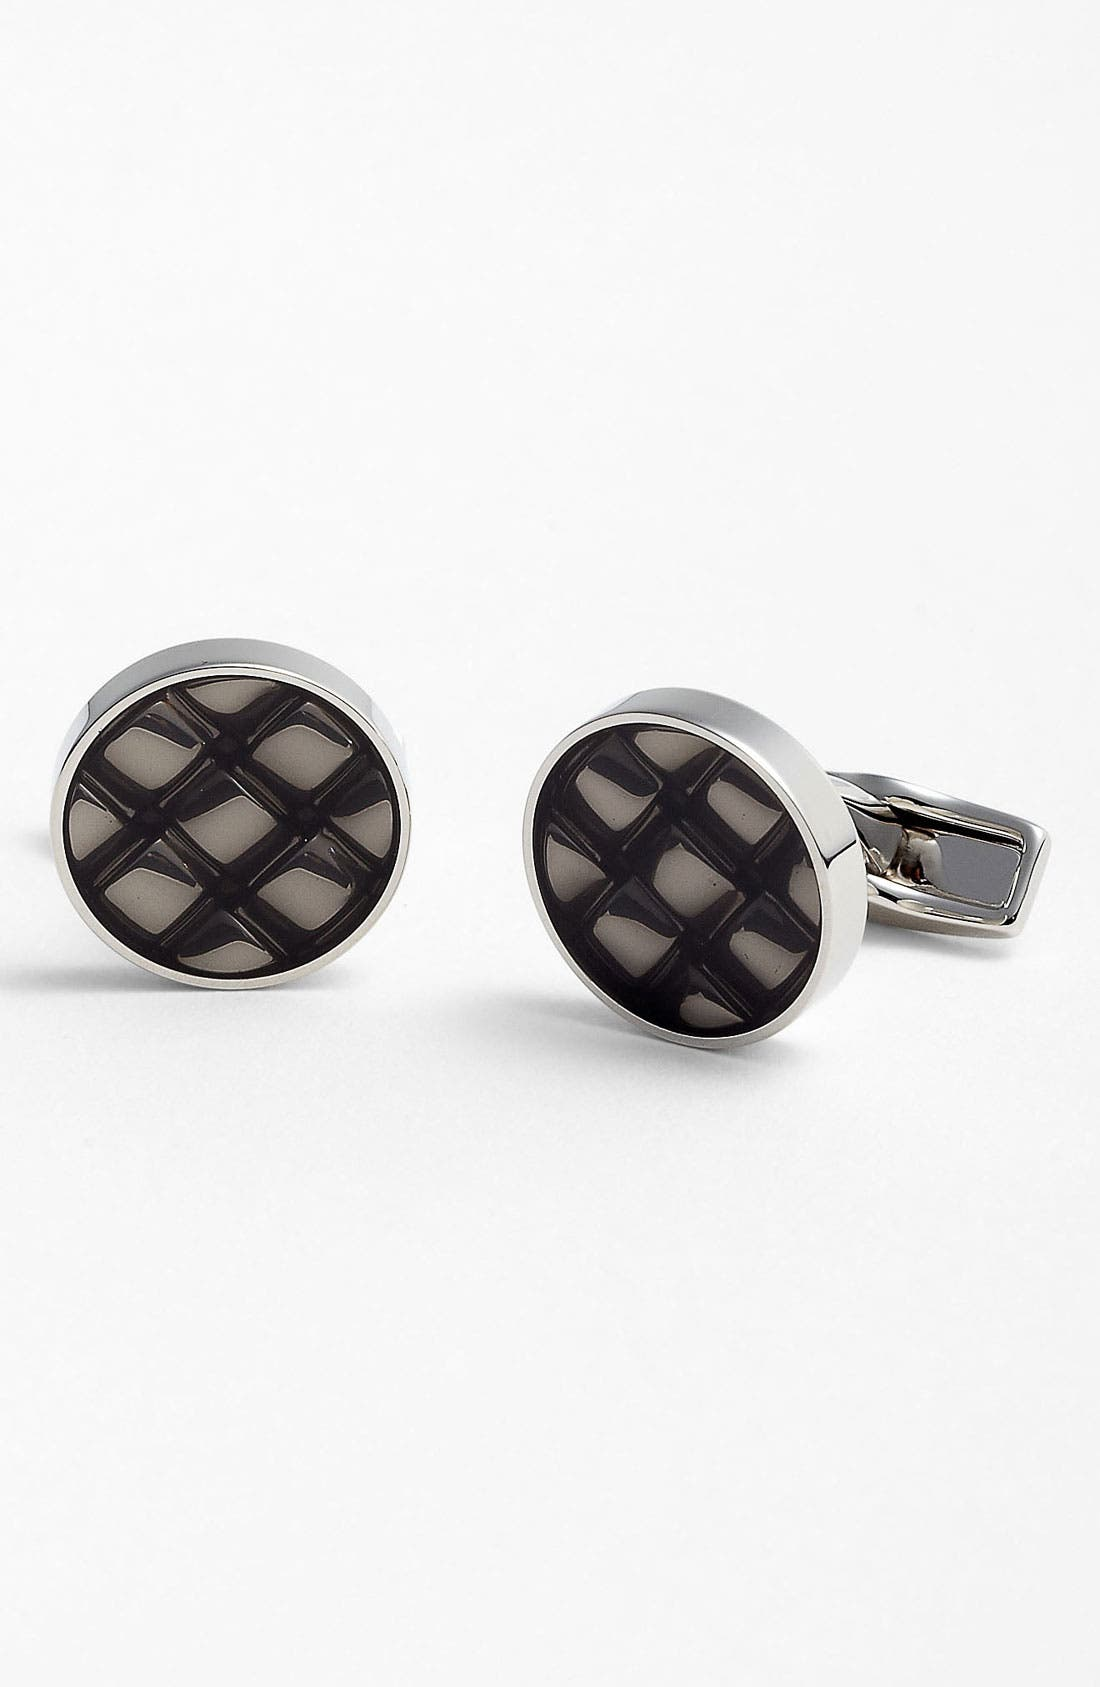 Alternate Image 1 Selected - BOSS Black 'Anisso' Cuff Links